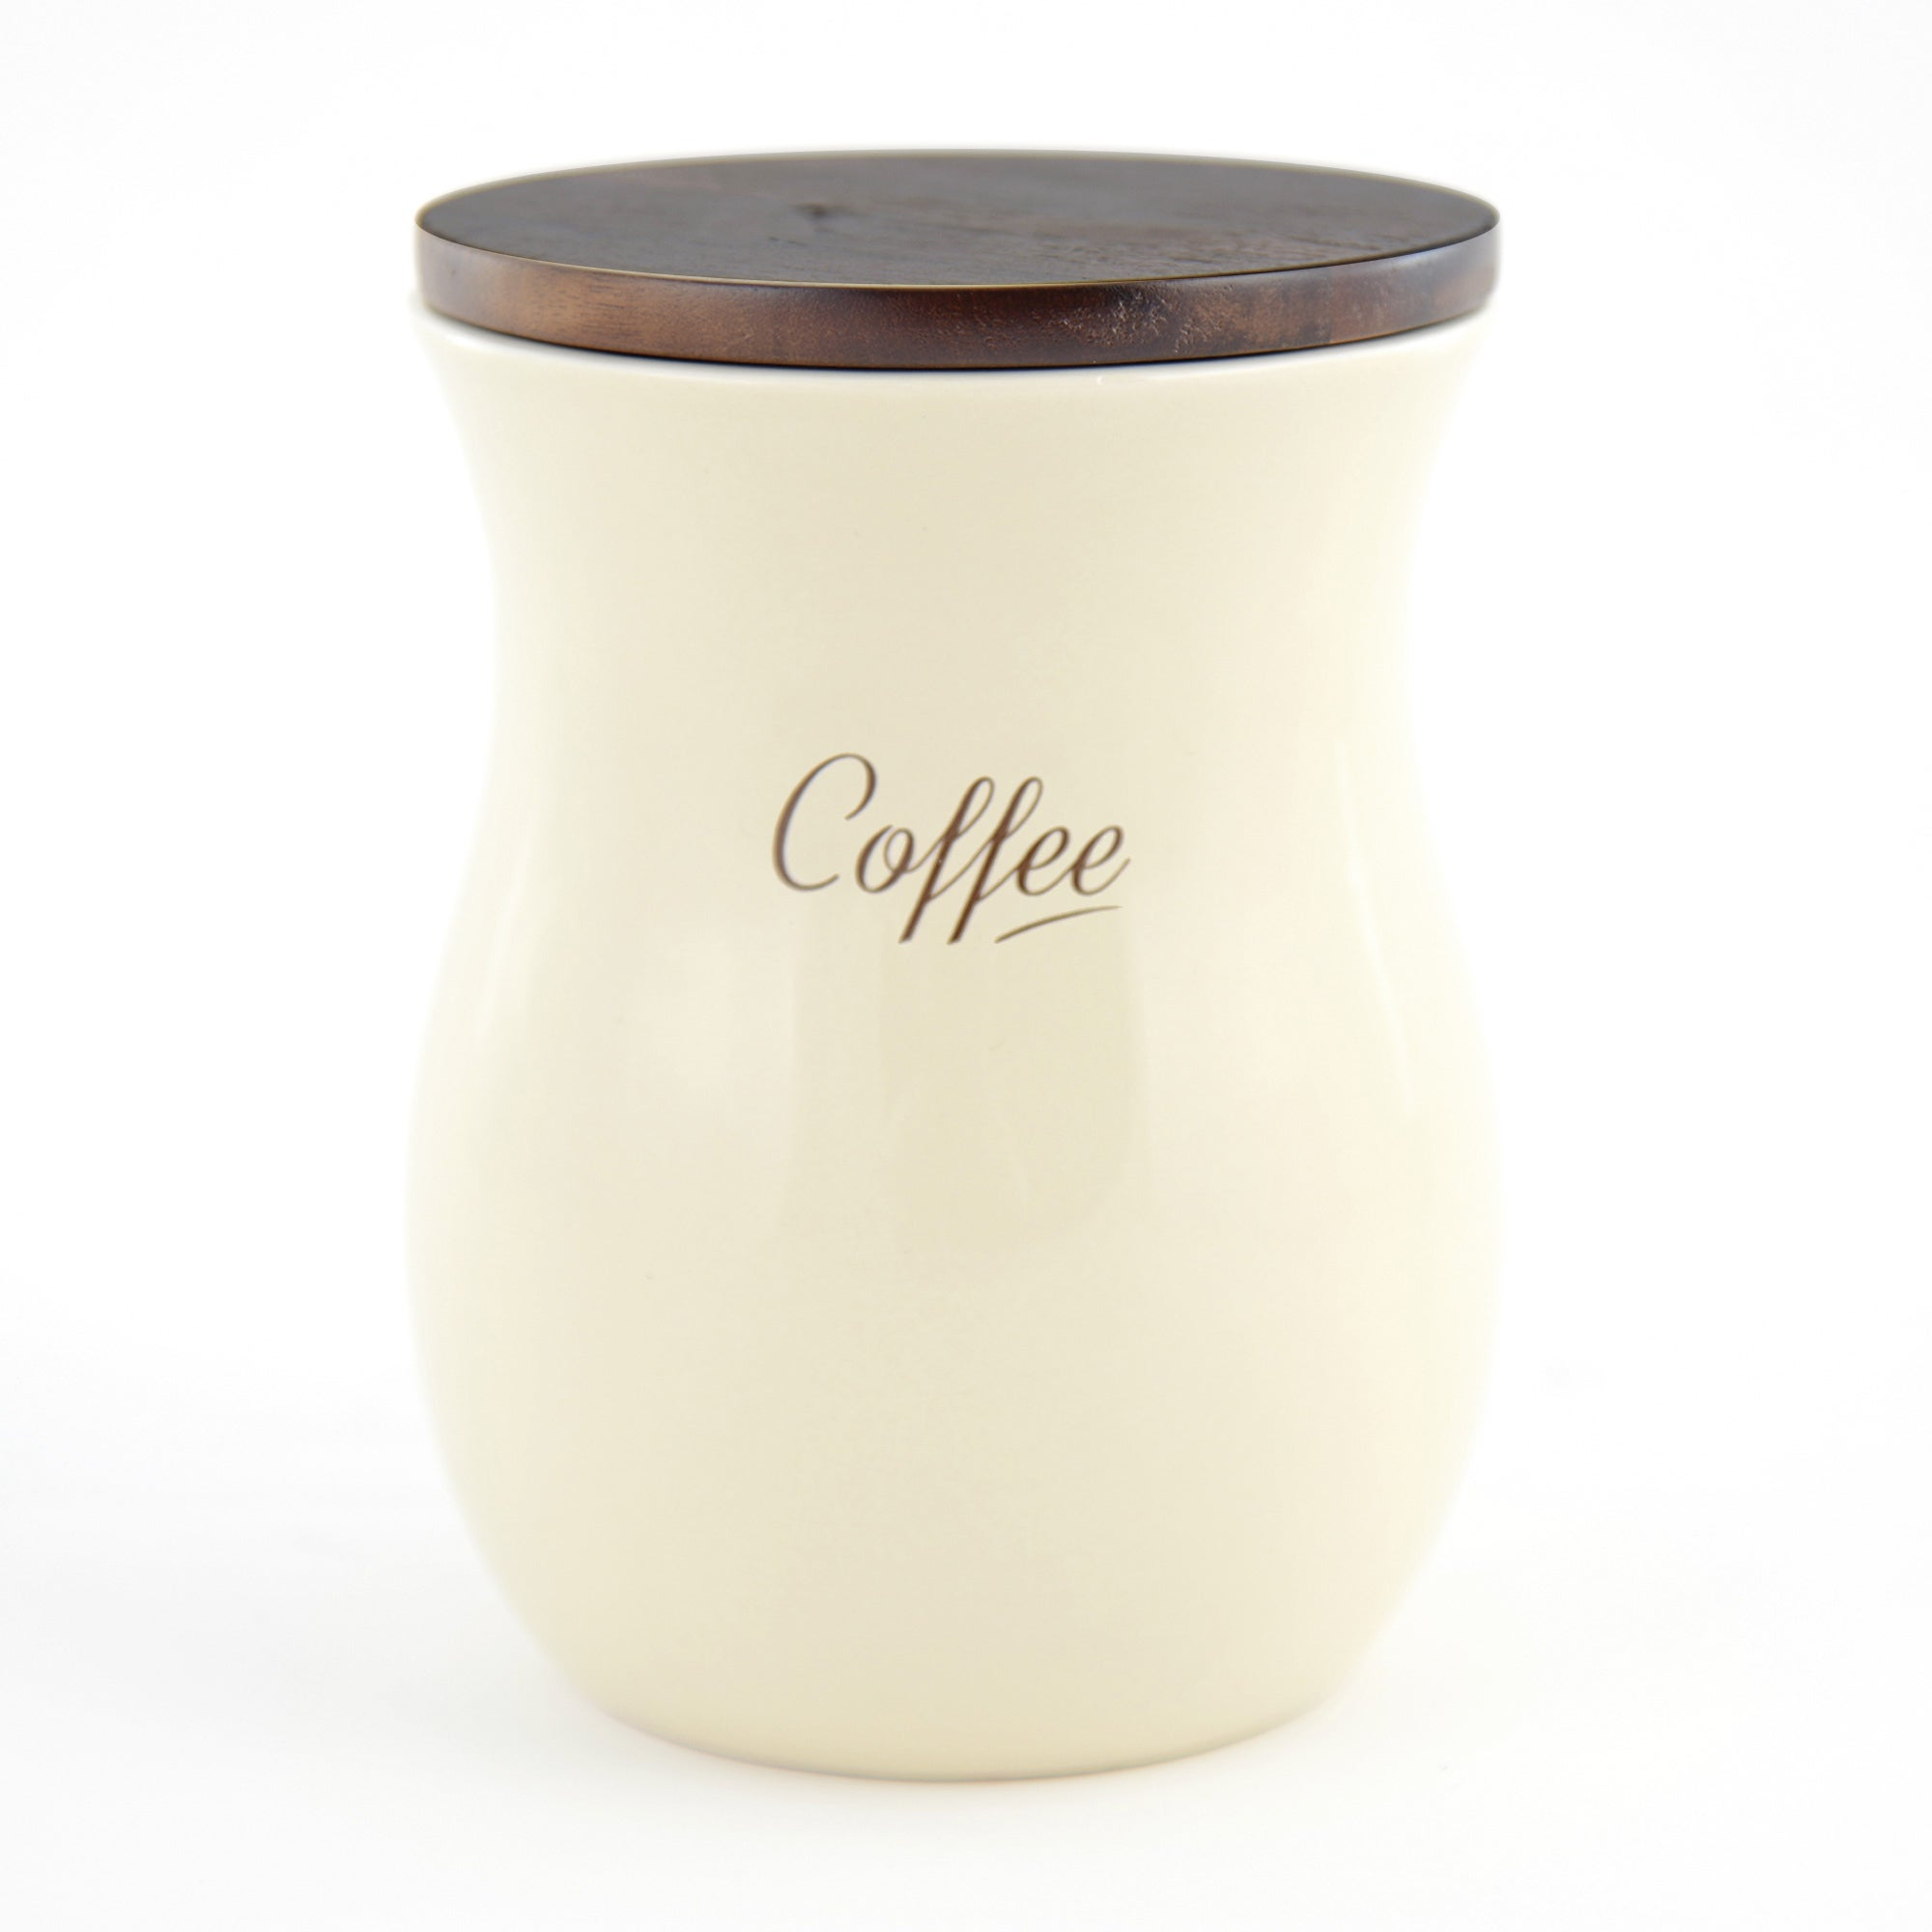 Hourglass Cream Coffee Canister